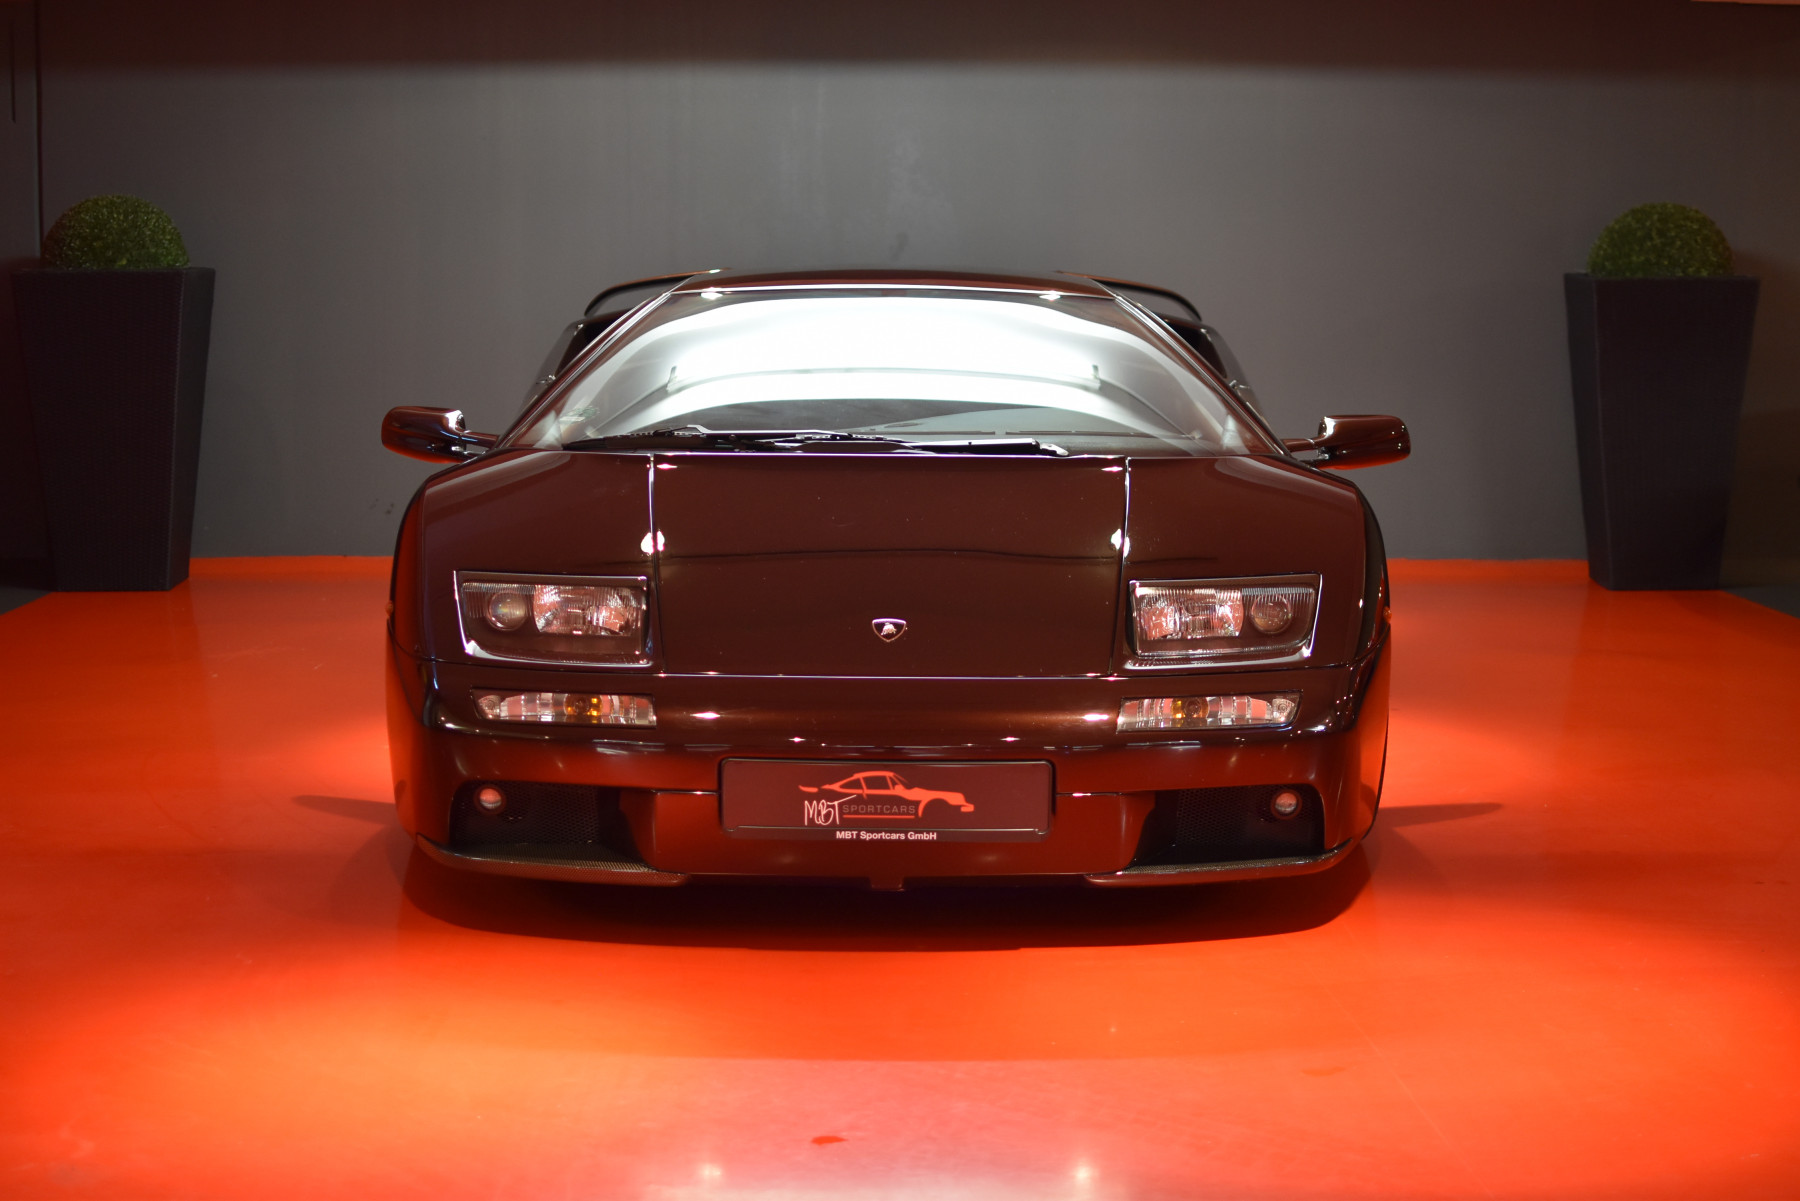 A 2001 Lamborghini Diablo VT 6.0 SE is up for grabs in Germany if you have €599,900 to part with.